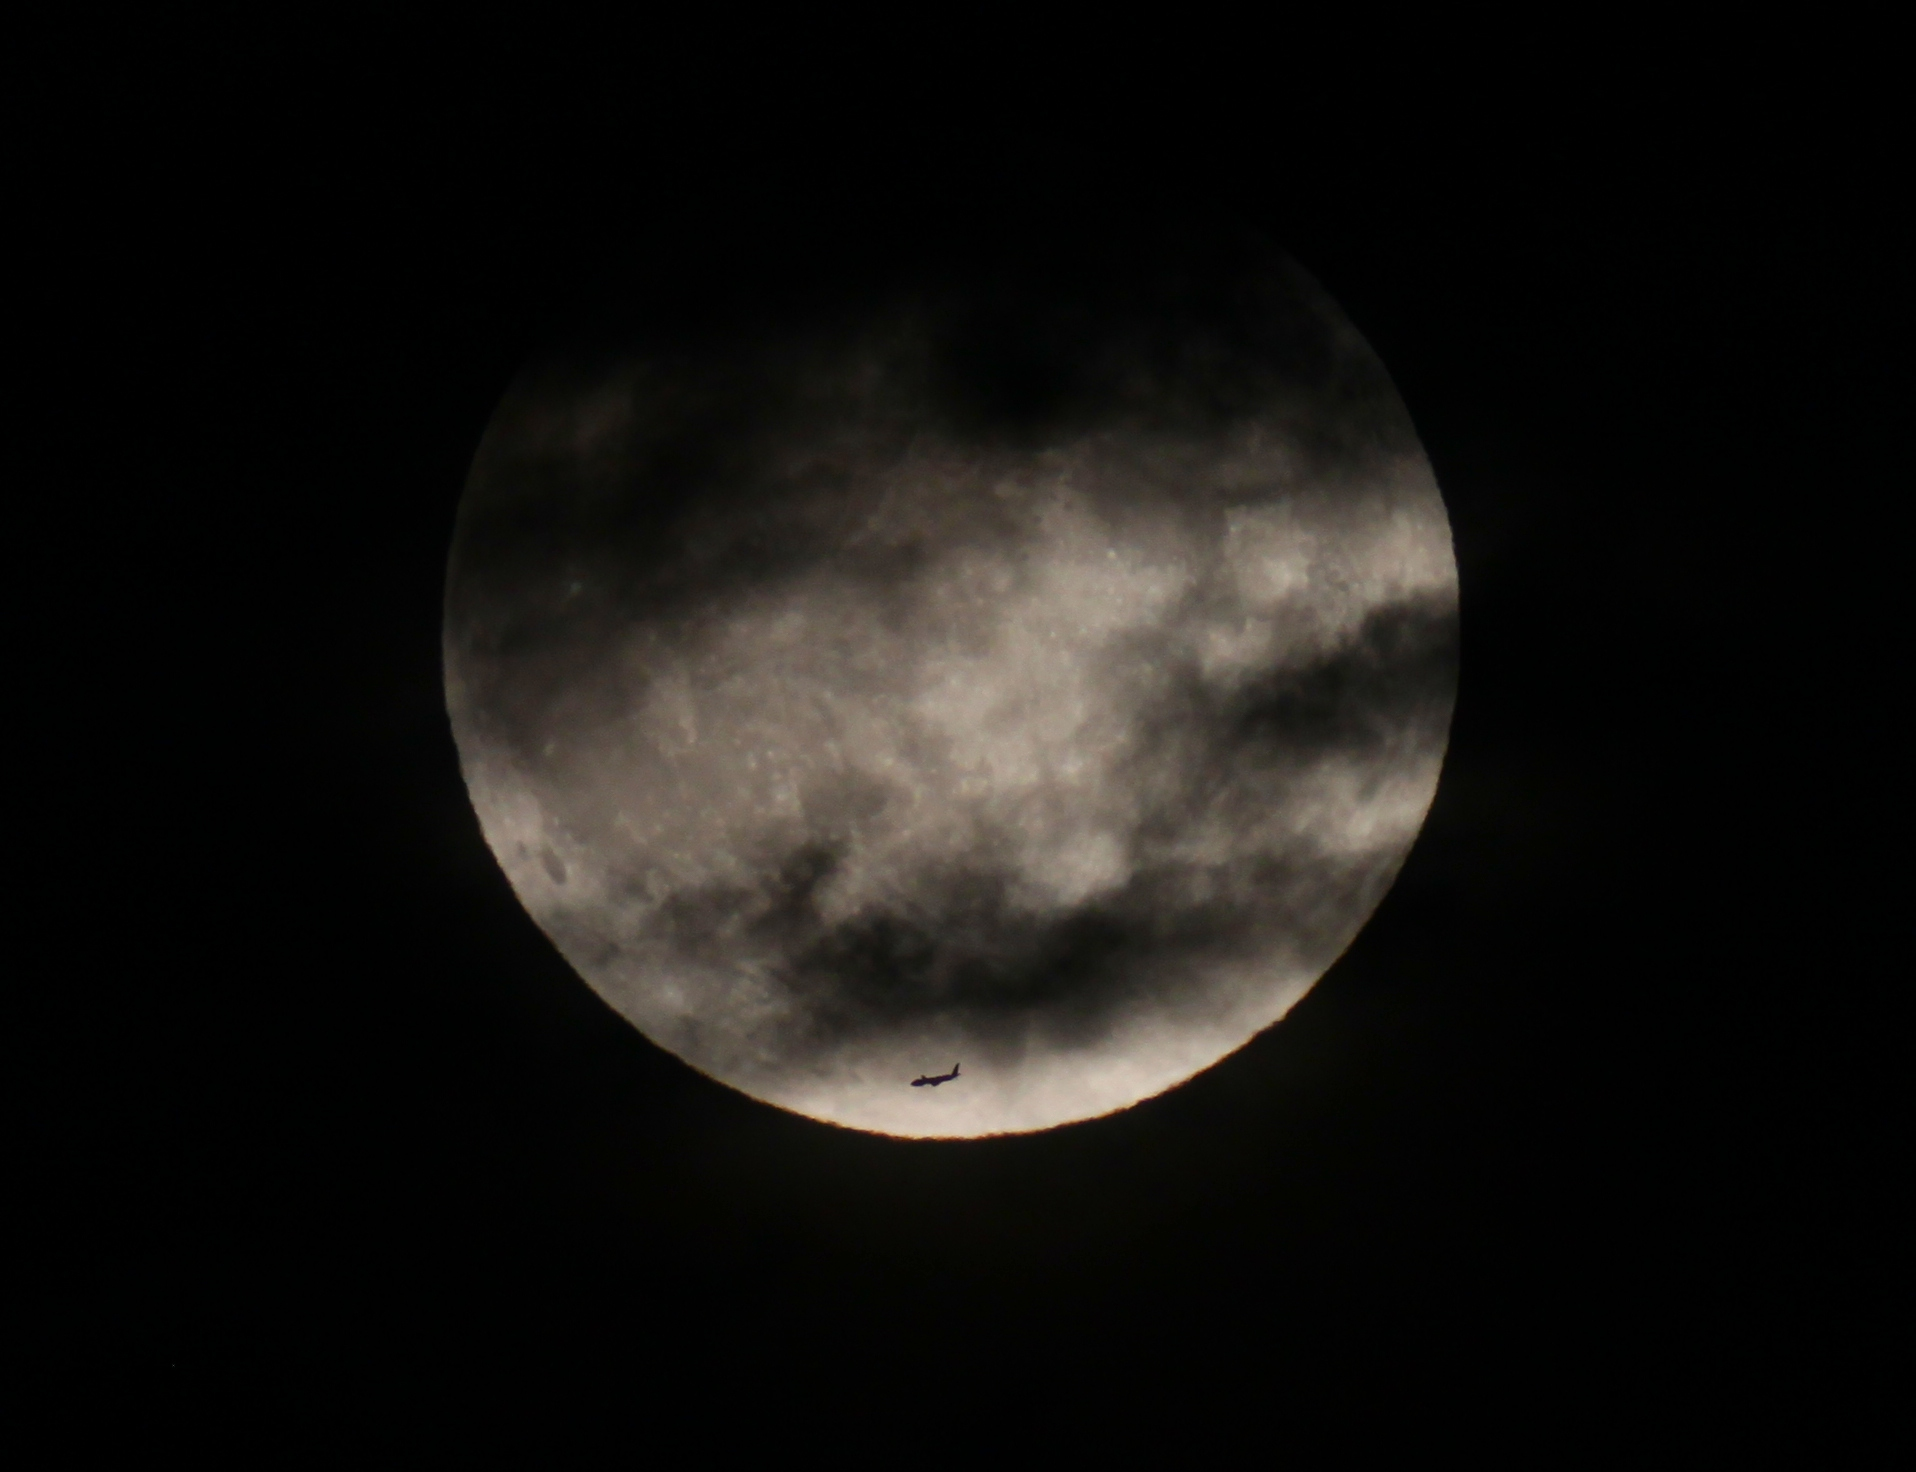 éclipse 16-09-2016 avion